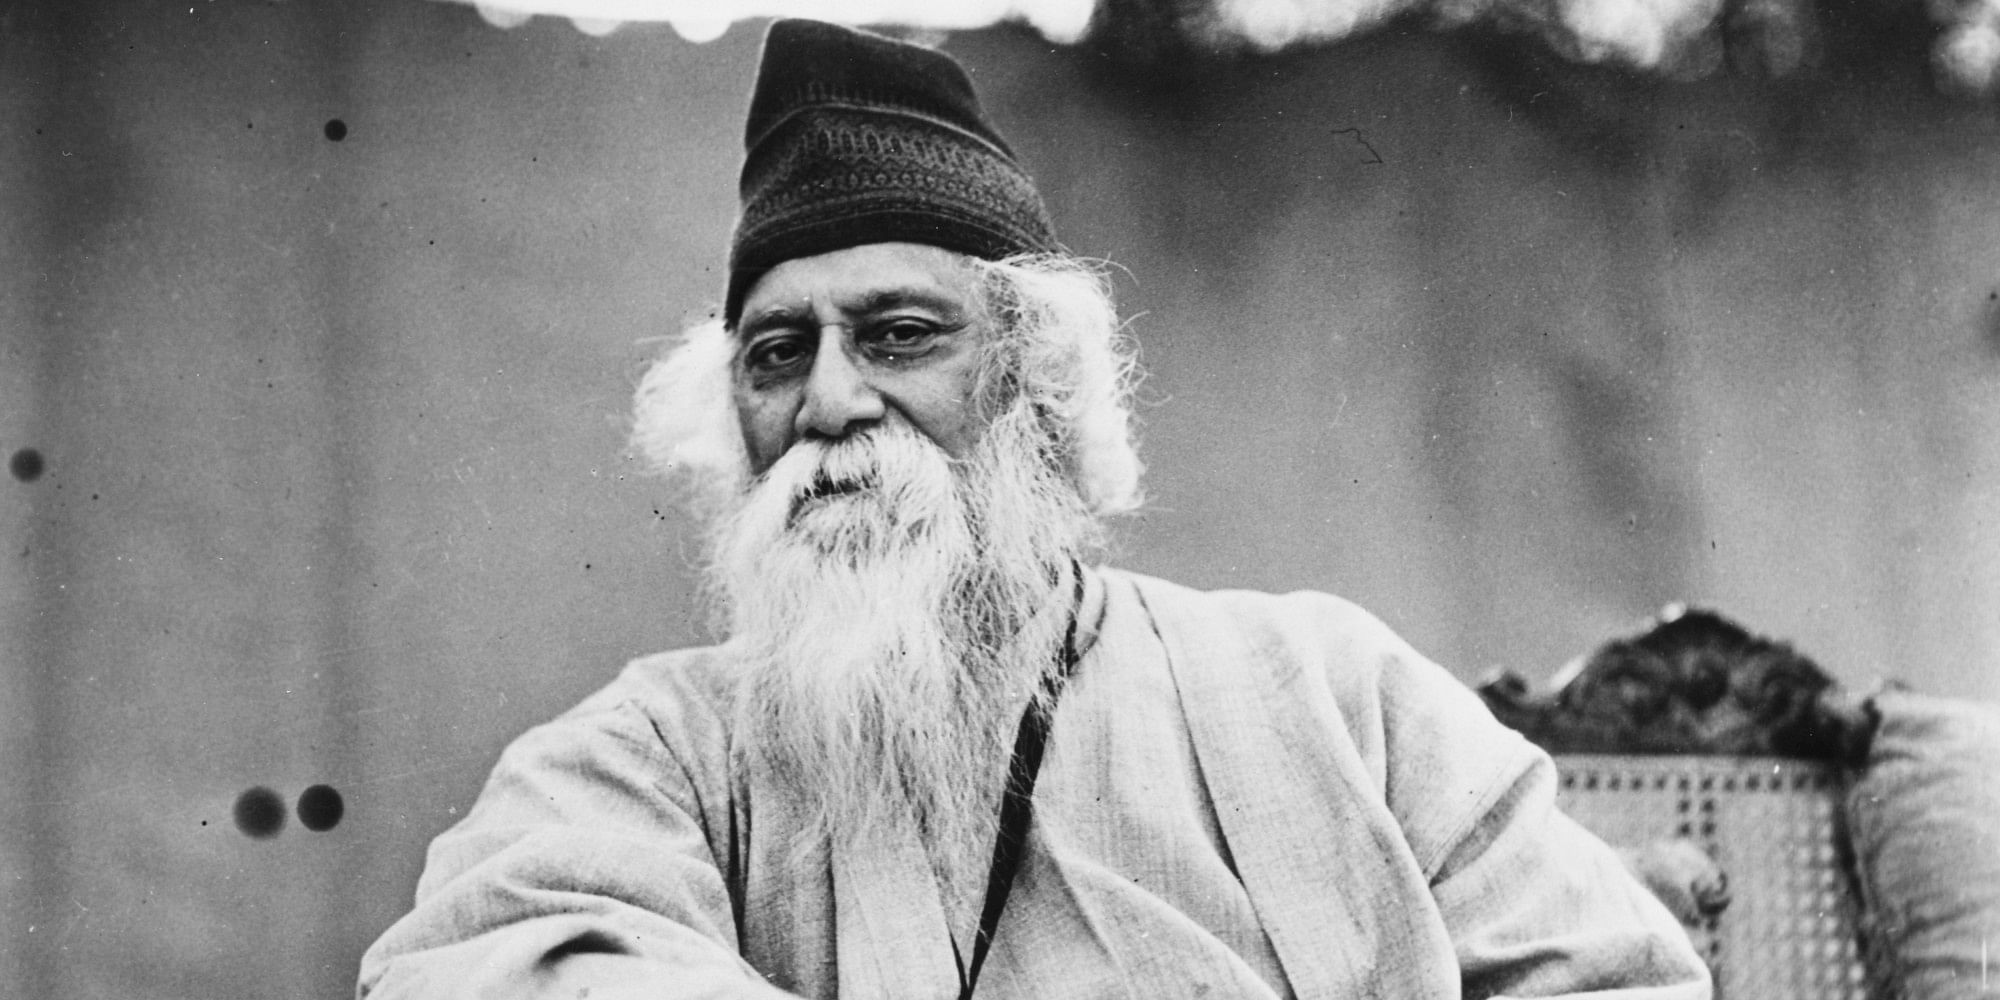 Portrait of Indian author and poet Rabindranath Tagore, circa 1935. (Photo by Fox Photos/Hulton Archive/Getty Images)